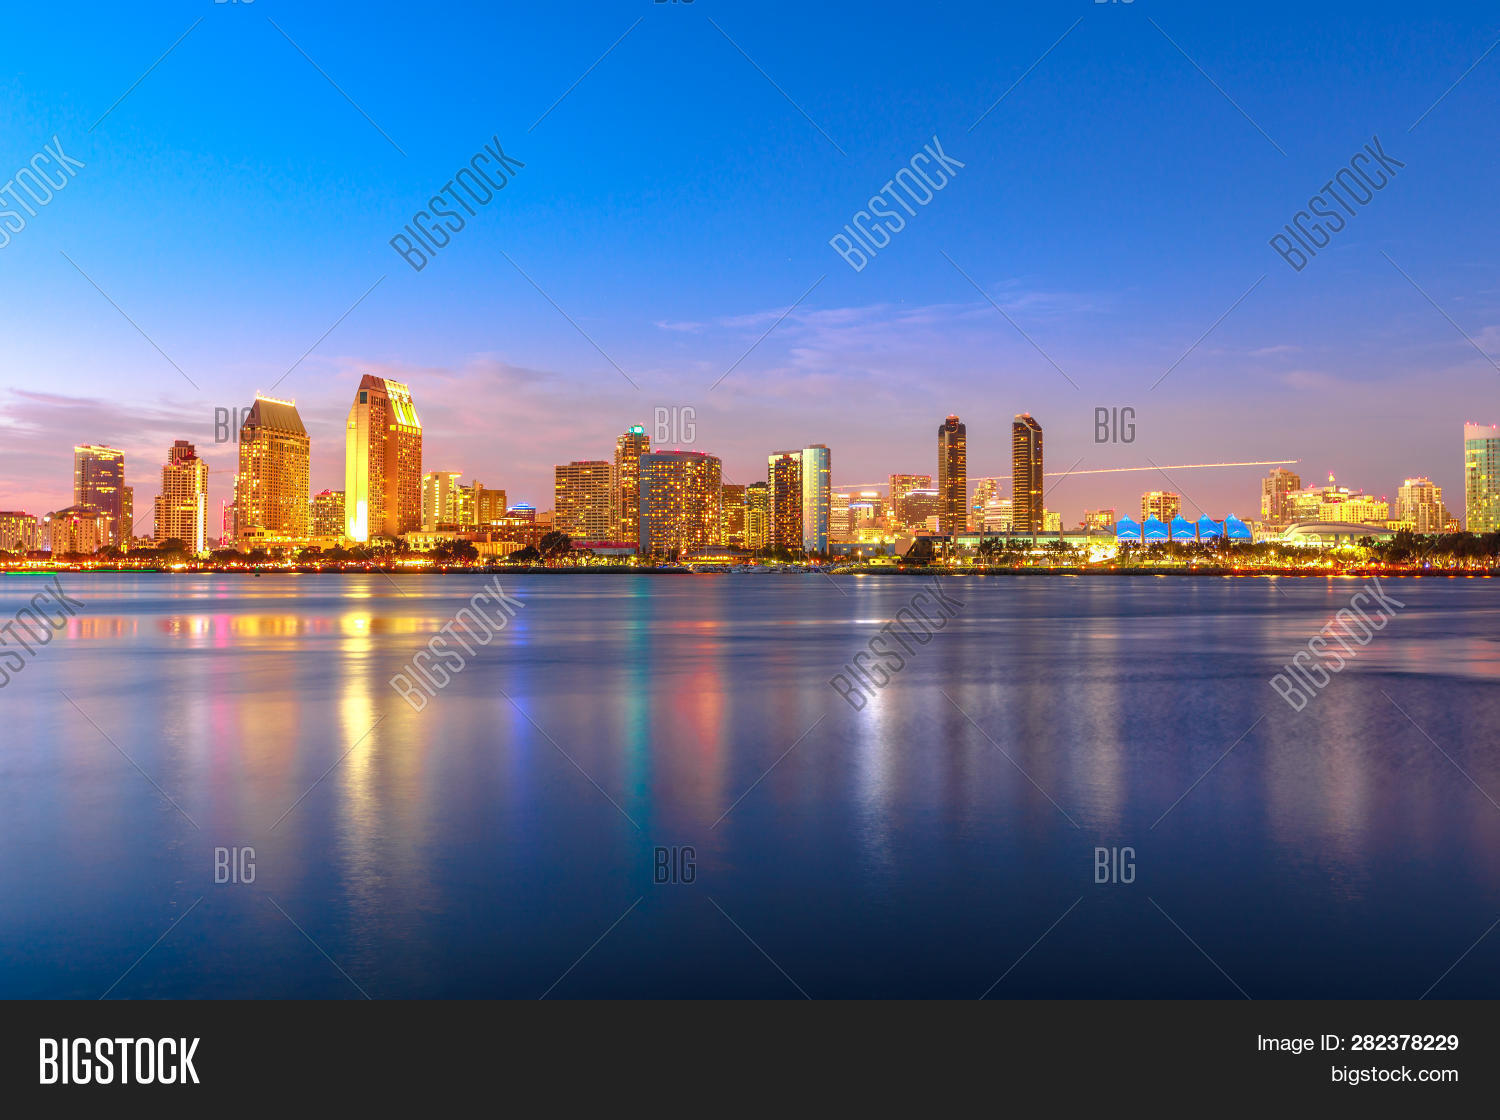 Panoramic Landscape Of San Diego Skyline With Illuminated Skyscrapers Reflecting In San Diego Bay At